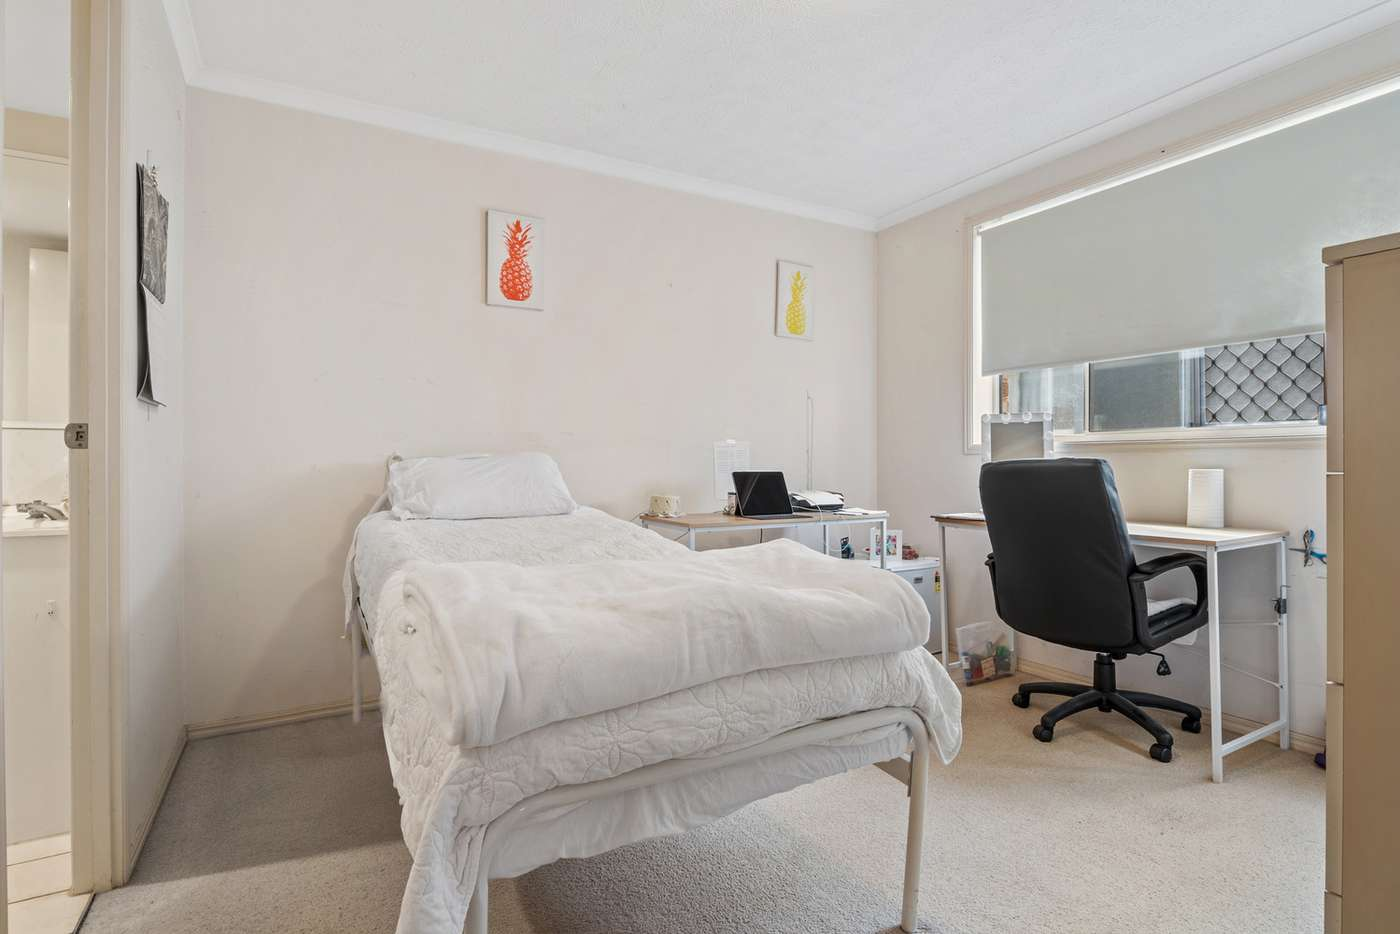 Sixth view of Homely apartment listing, 8/47 Bauer Street, Southport QLD 4215